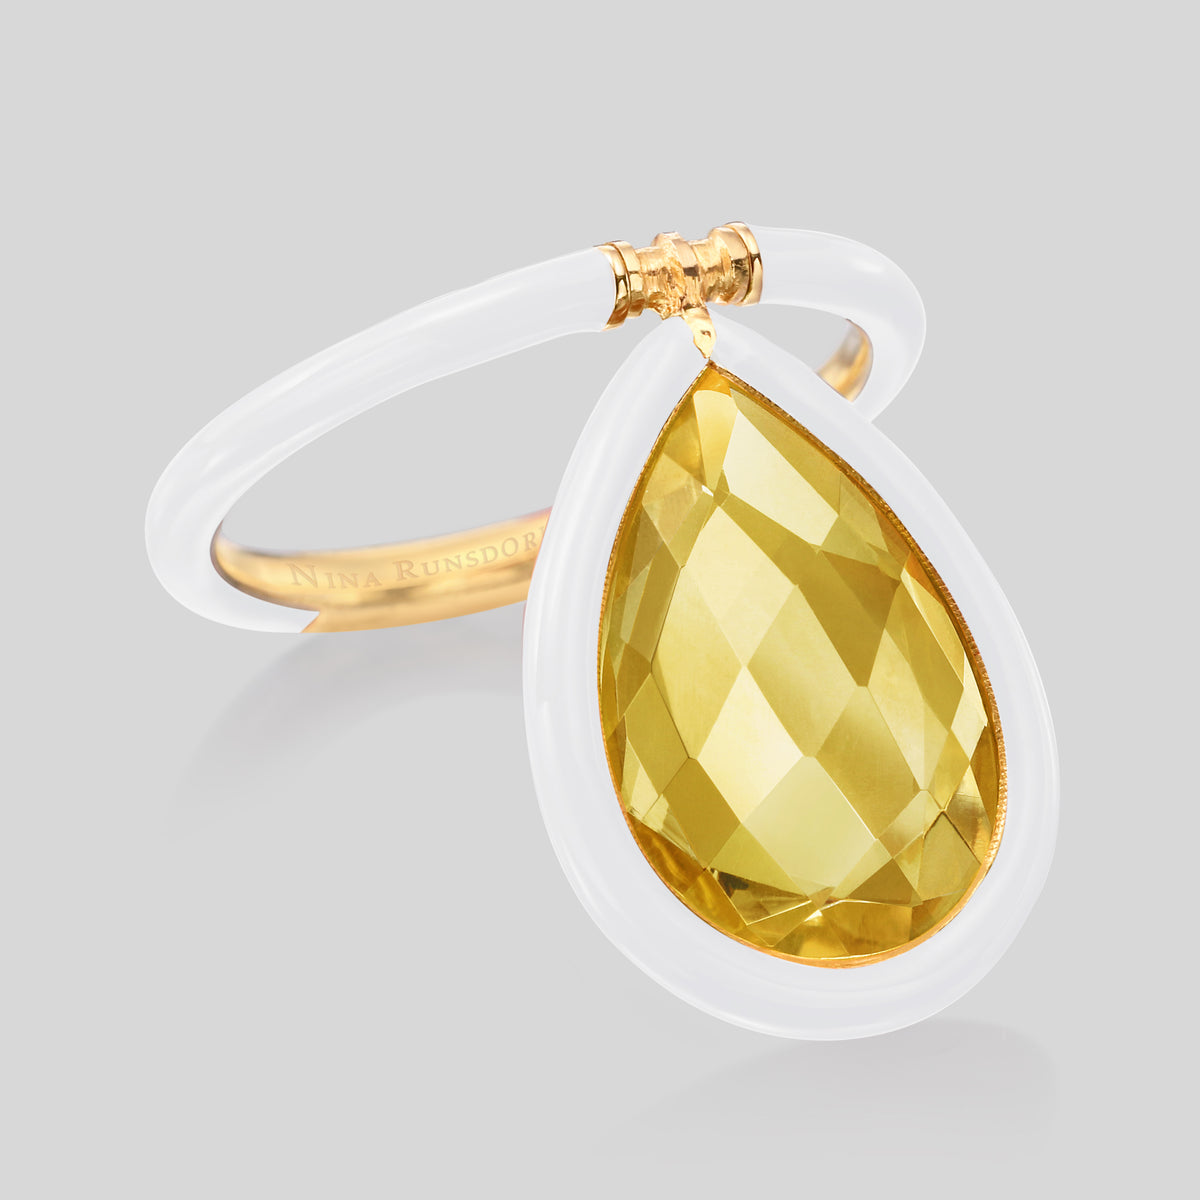 The Artist Large Citrine White Enamel Flip Ring - Nina Runsdorf